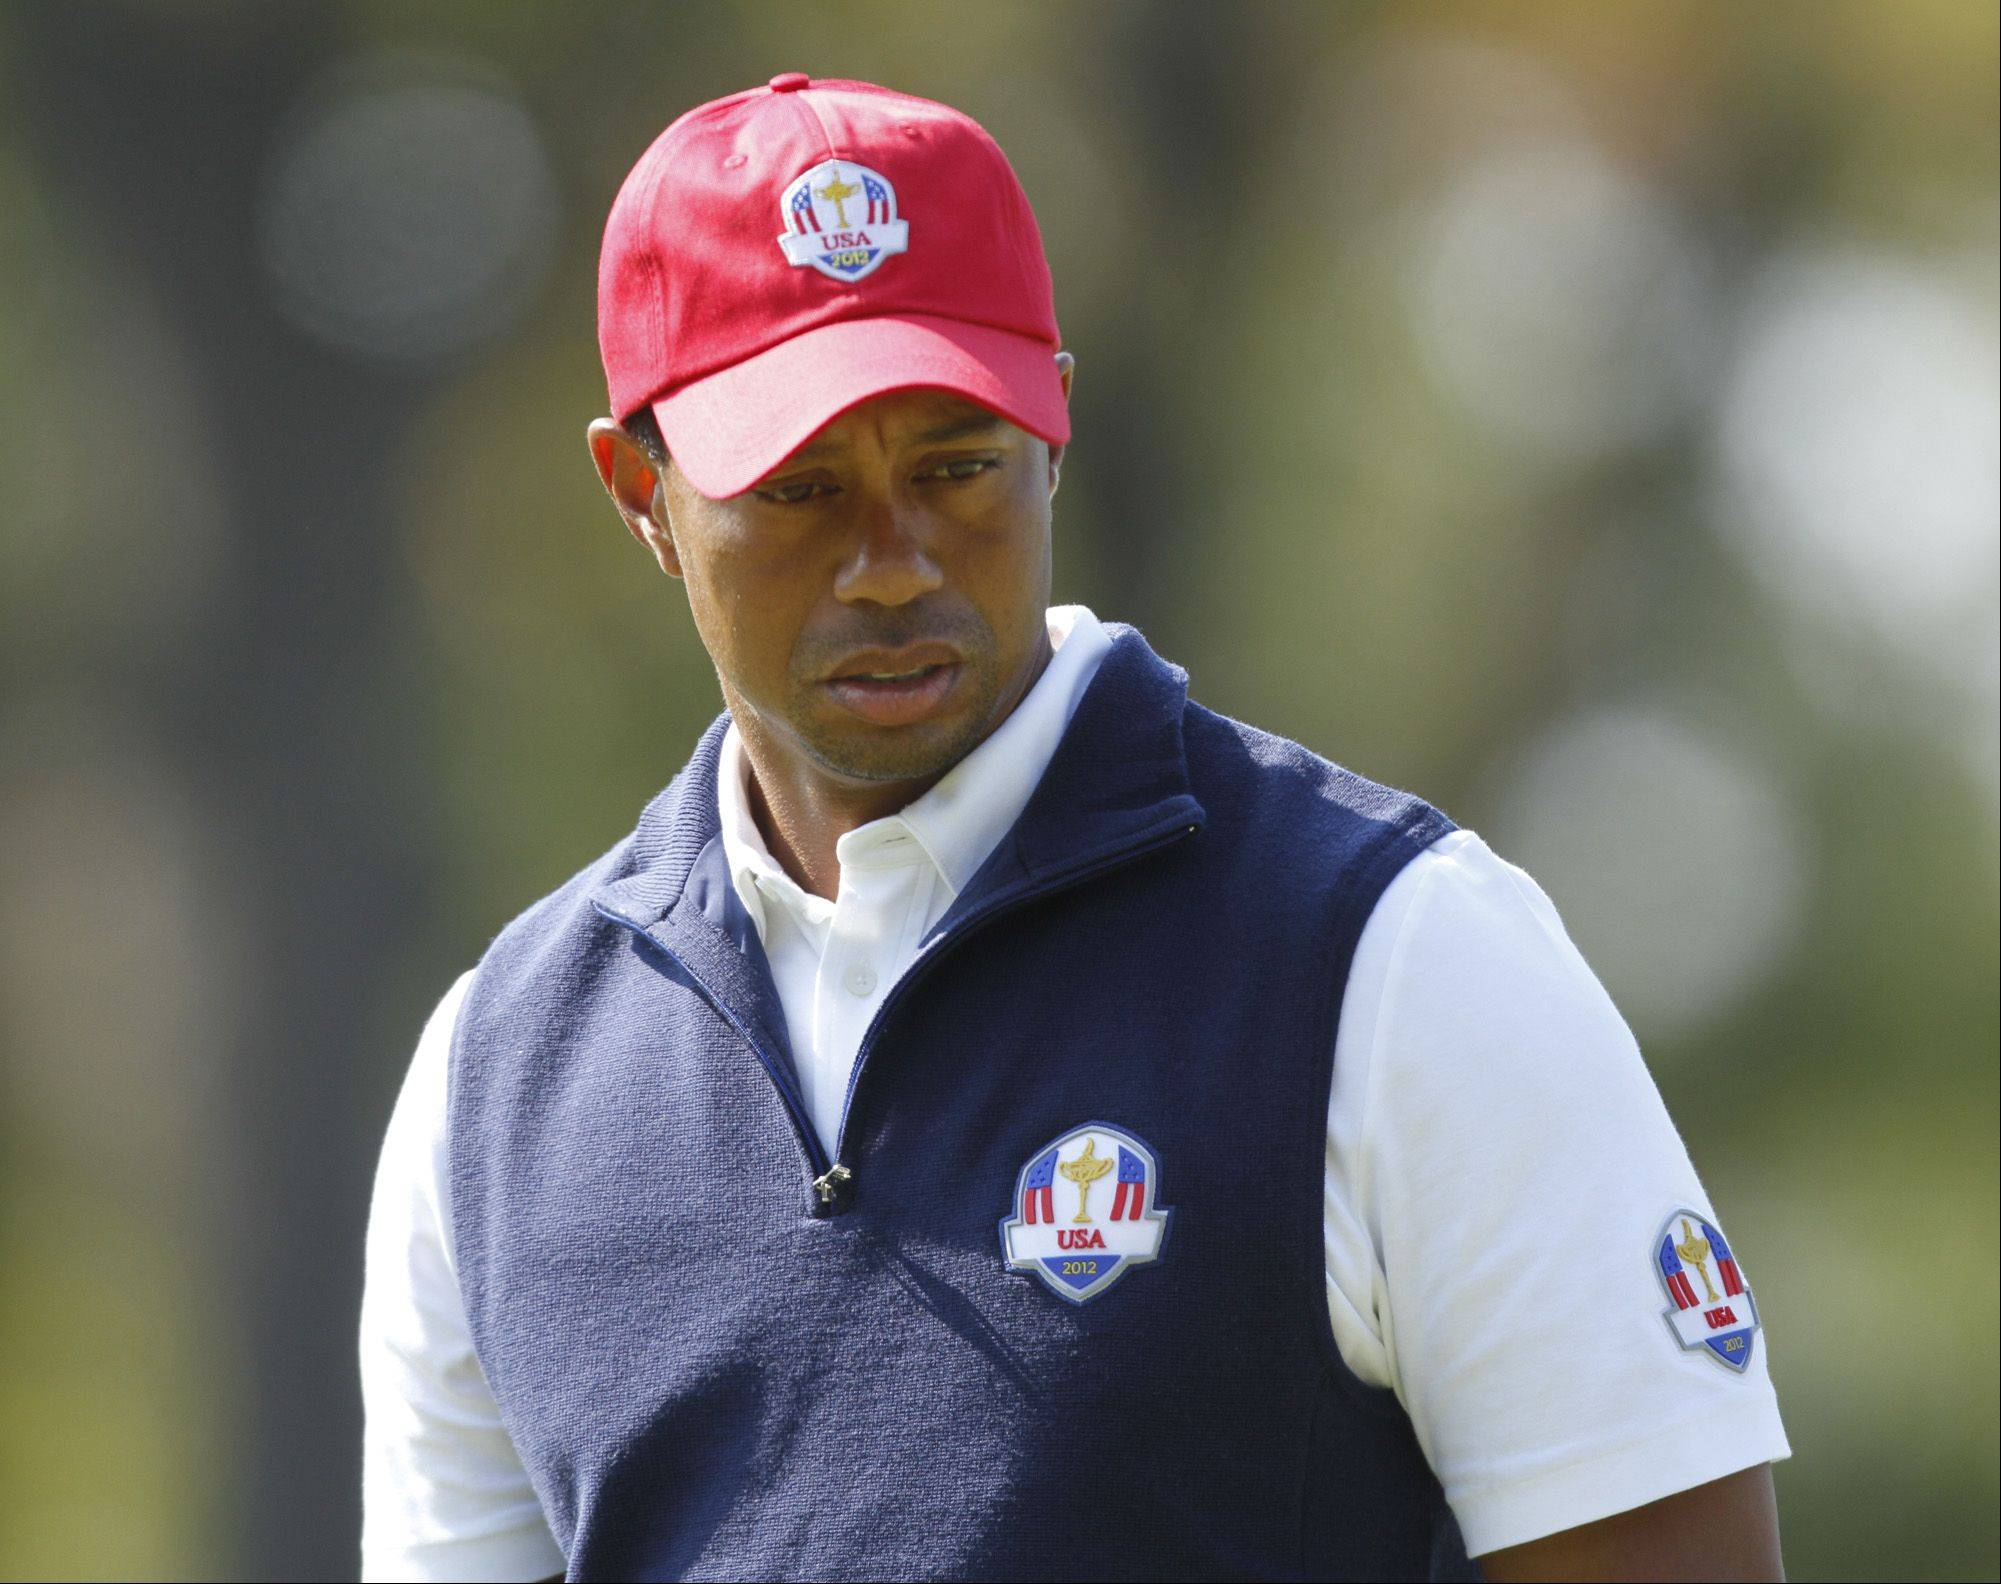 Tiger Woods got off to a rough start in Friday's Ryder Cup at Medinah, dropping his opening match with teammate Steve Stricker. He bounced back with five birdies in the afternoon session, but rookie Nicolas Colsa